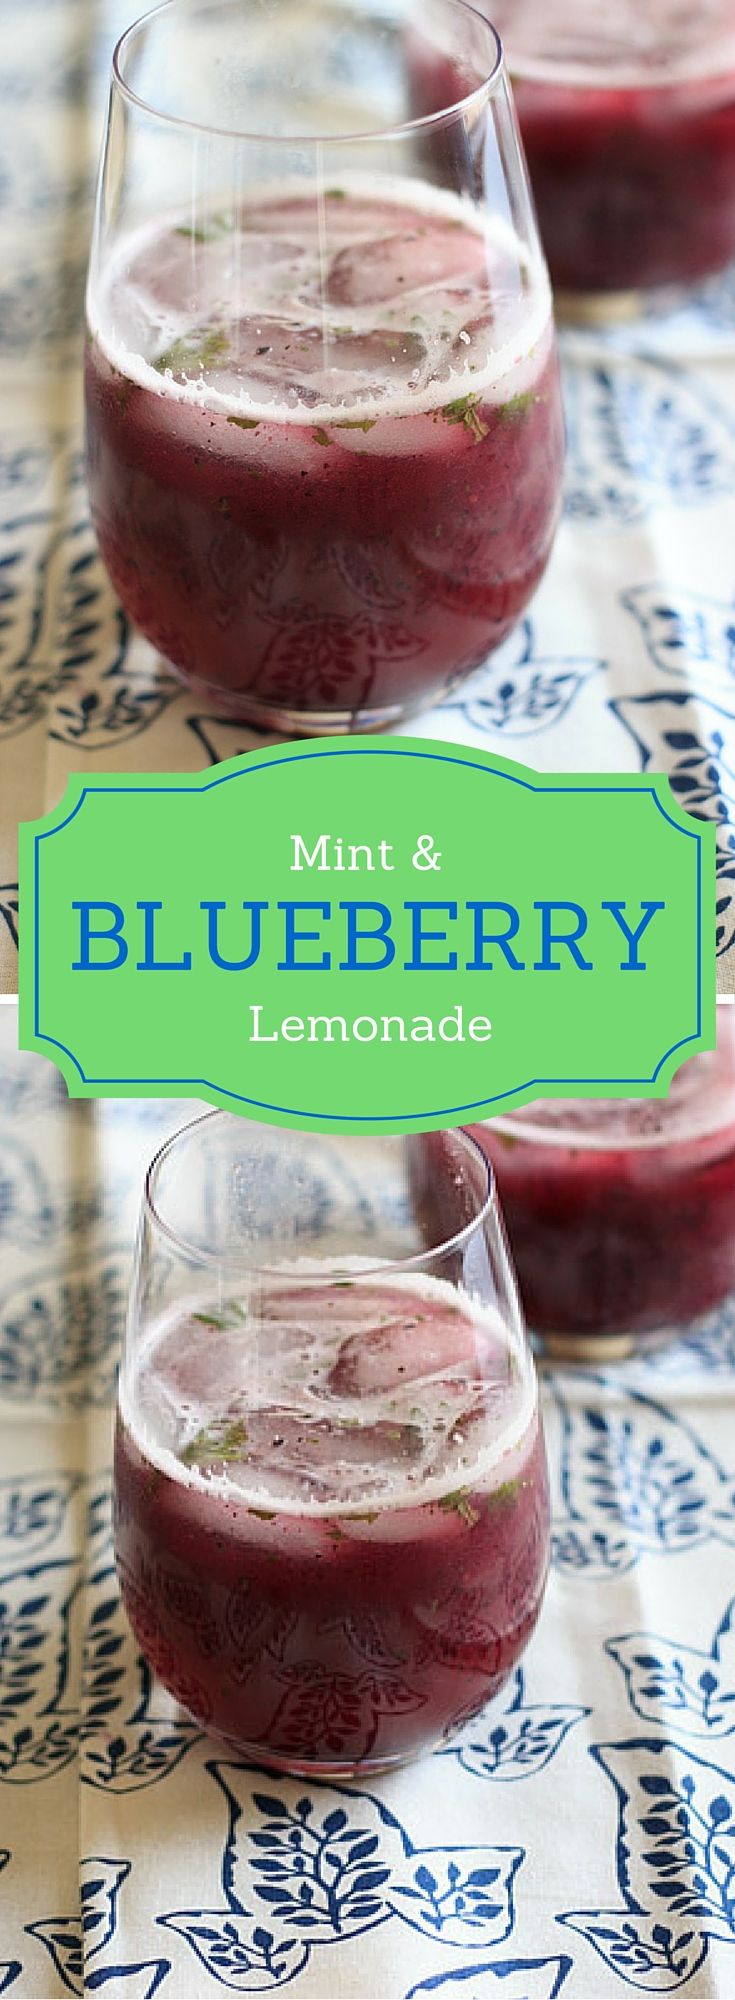 Blueberry mint lemonade - refreshing summer drink with fresh squeezed lemons, added flavor of blueberries, and extra kick of mint!